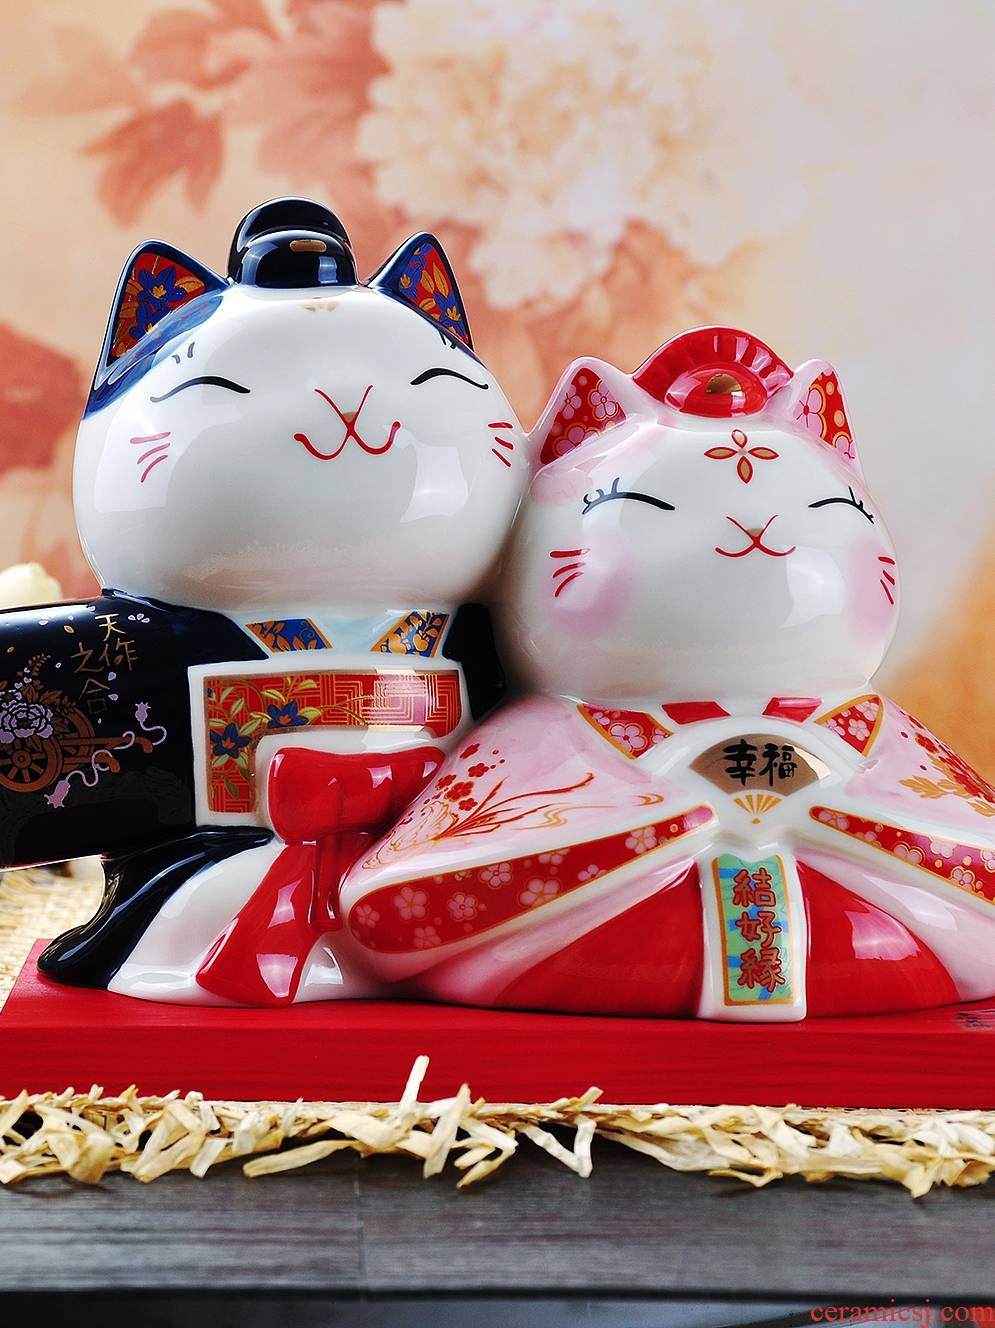 Valentine 's day gift marriage room adornment is placed lovely ceramic plutus cat piggy bank girlfriends friend wedding gift